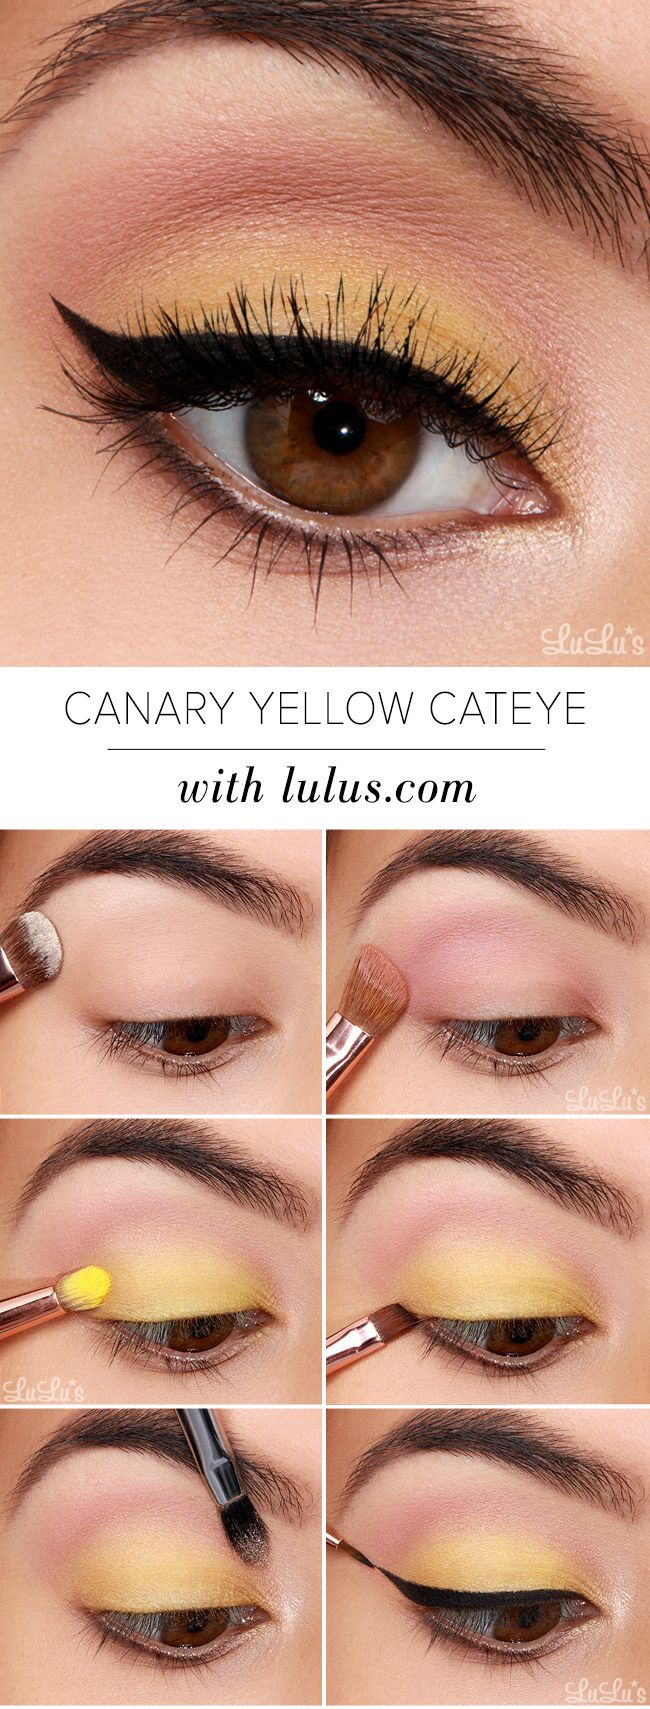 Lulus How-To: Canary Yellow Eye Makeup Tutorial